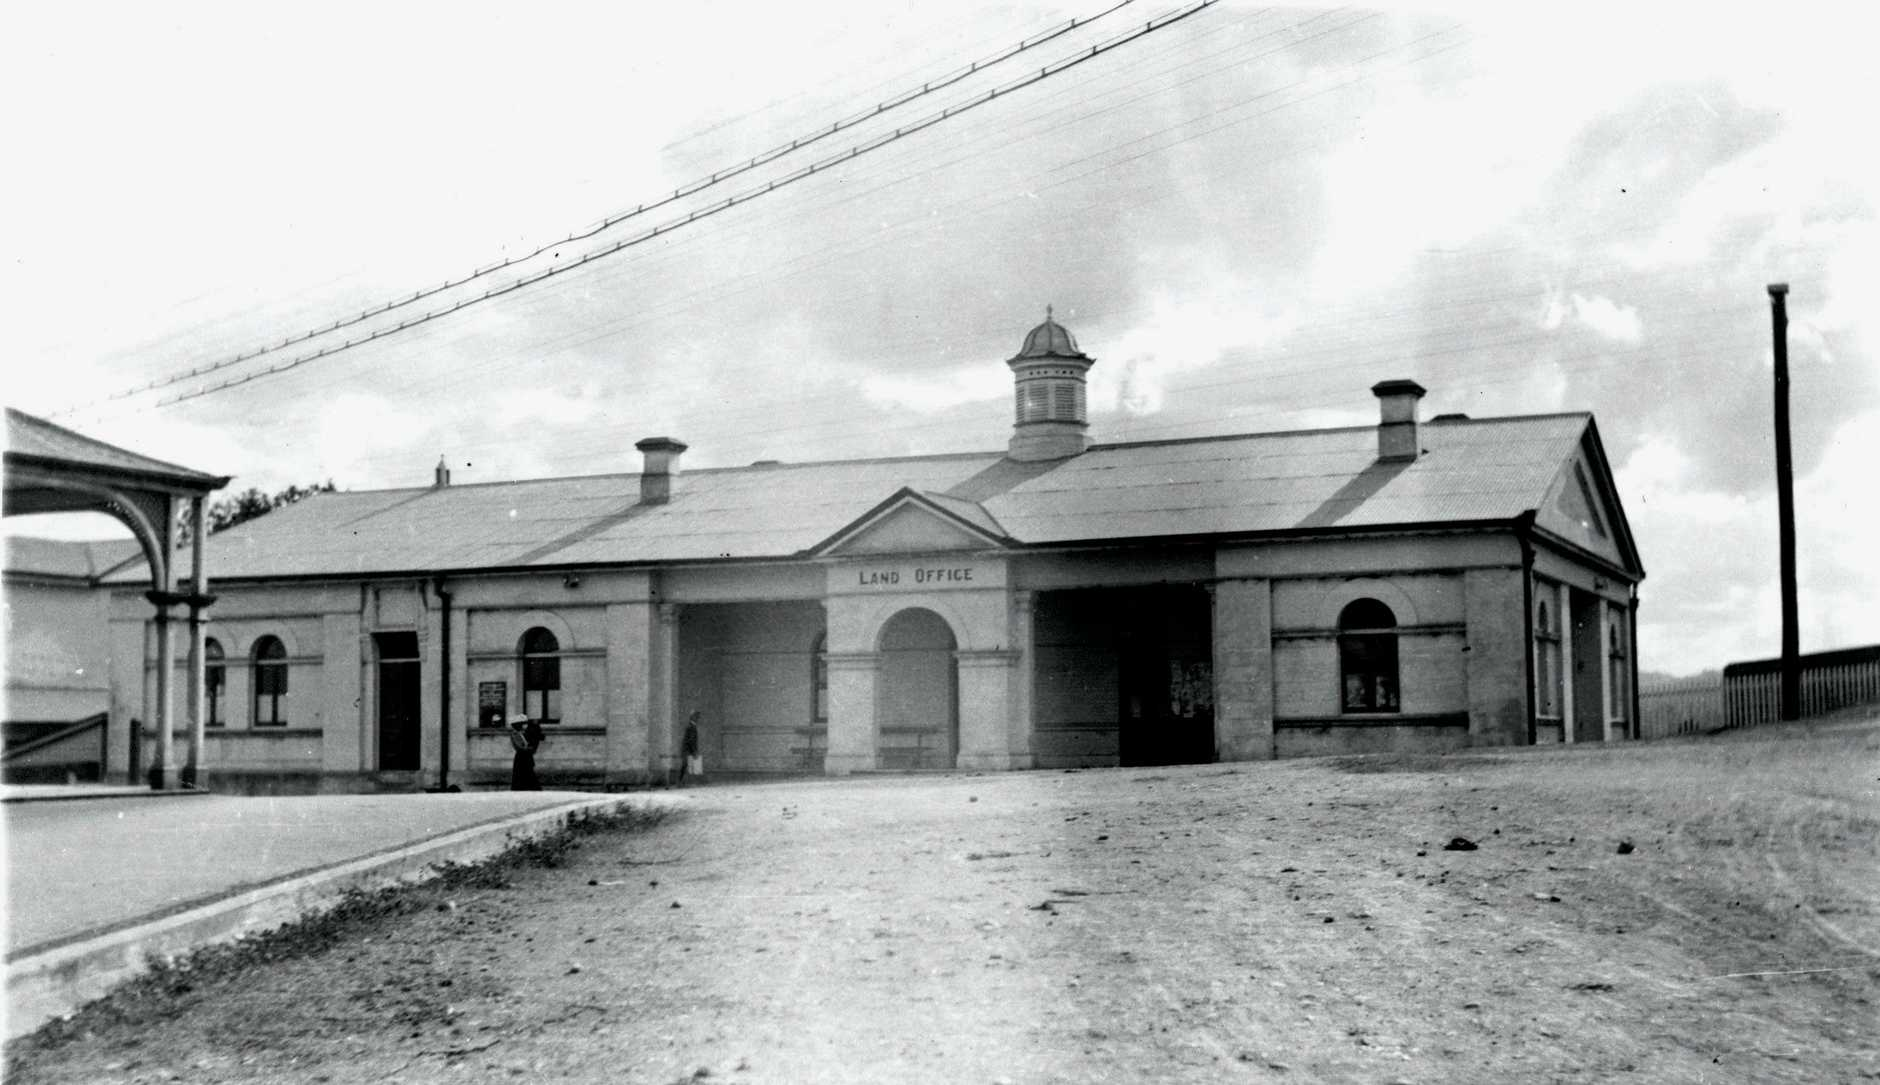 After serving as a court house, the Gympie Land Office went on to become the Land Office c1911.Attribution: State Library of Queensland